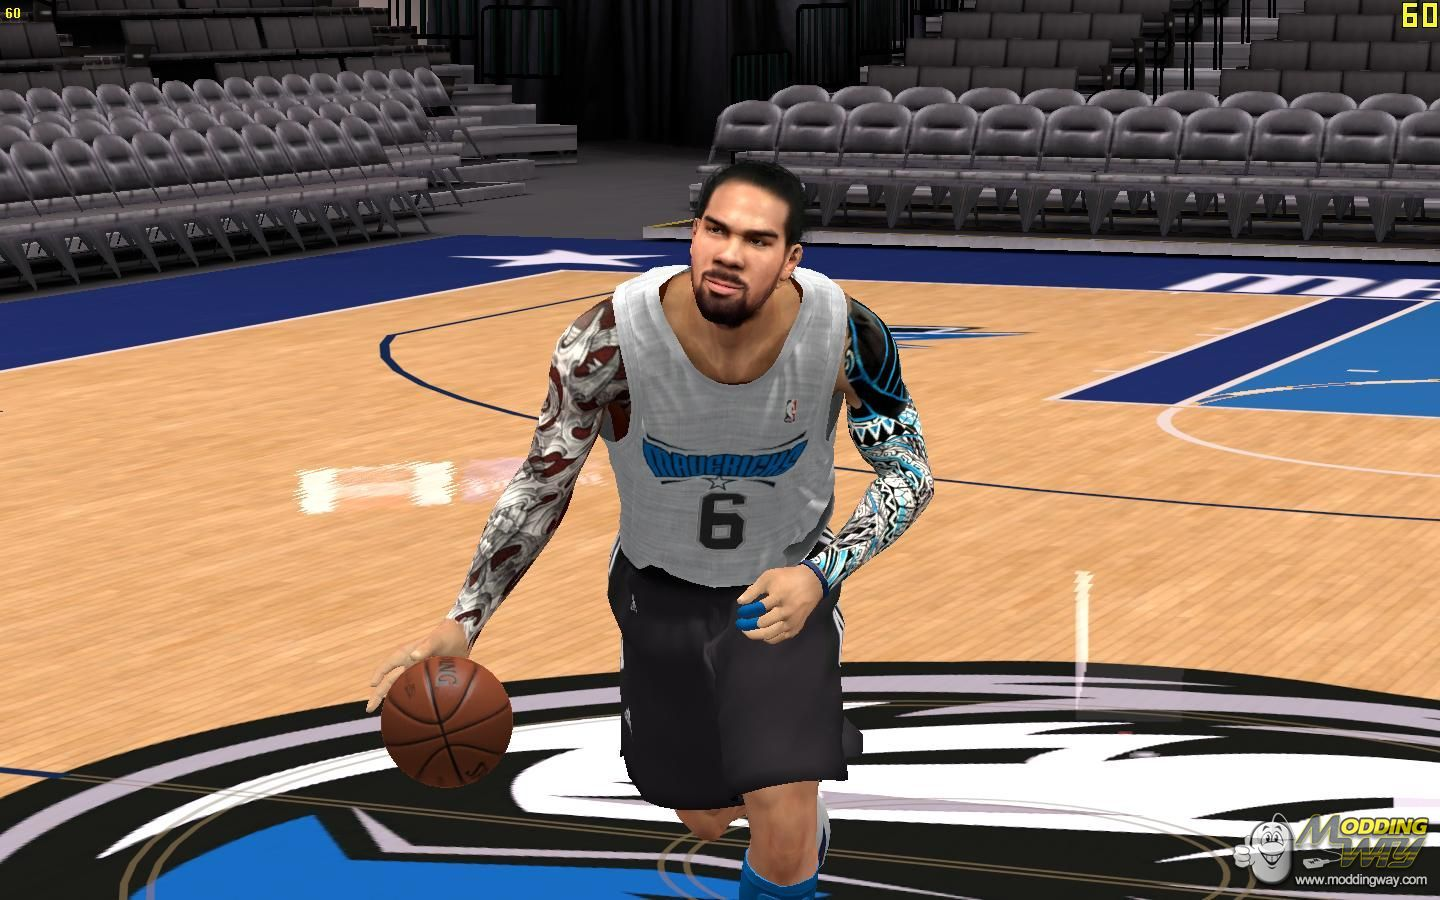 Nba 2k16 Cheat Engine Table Update | 2018 Dodge Reviews